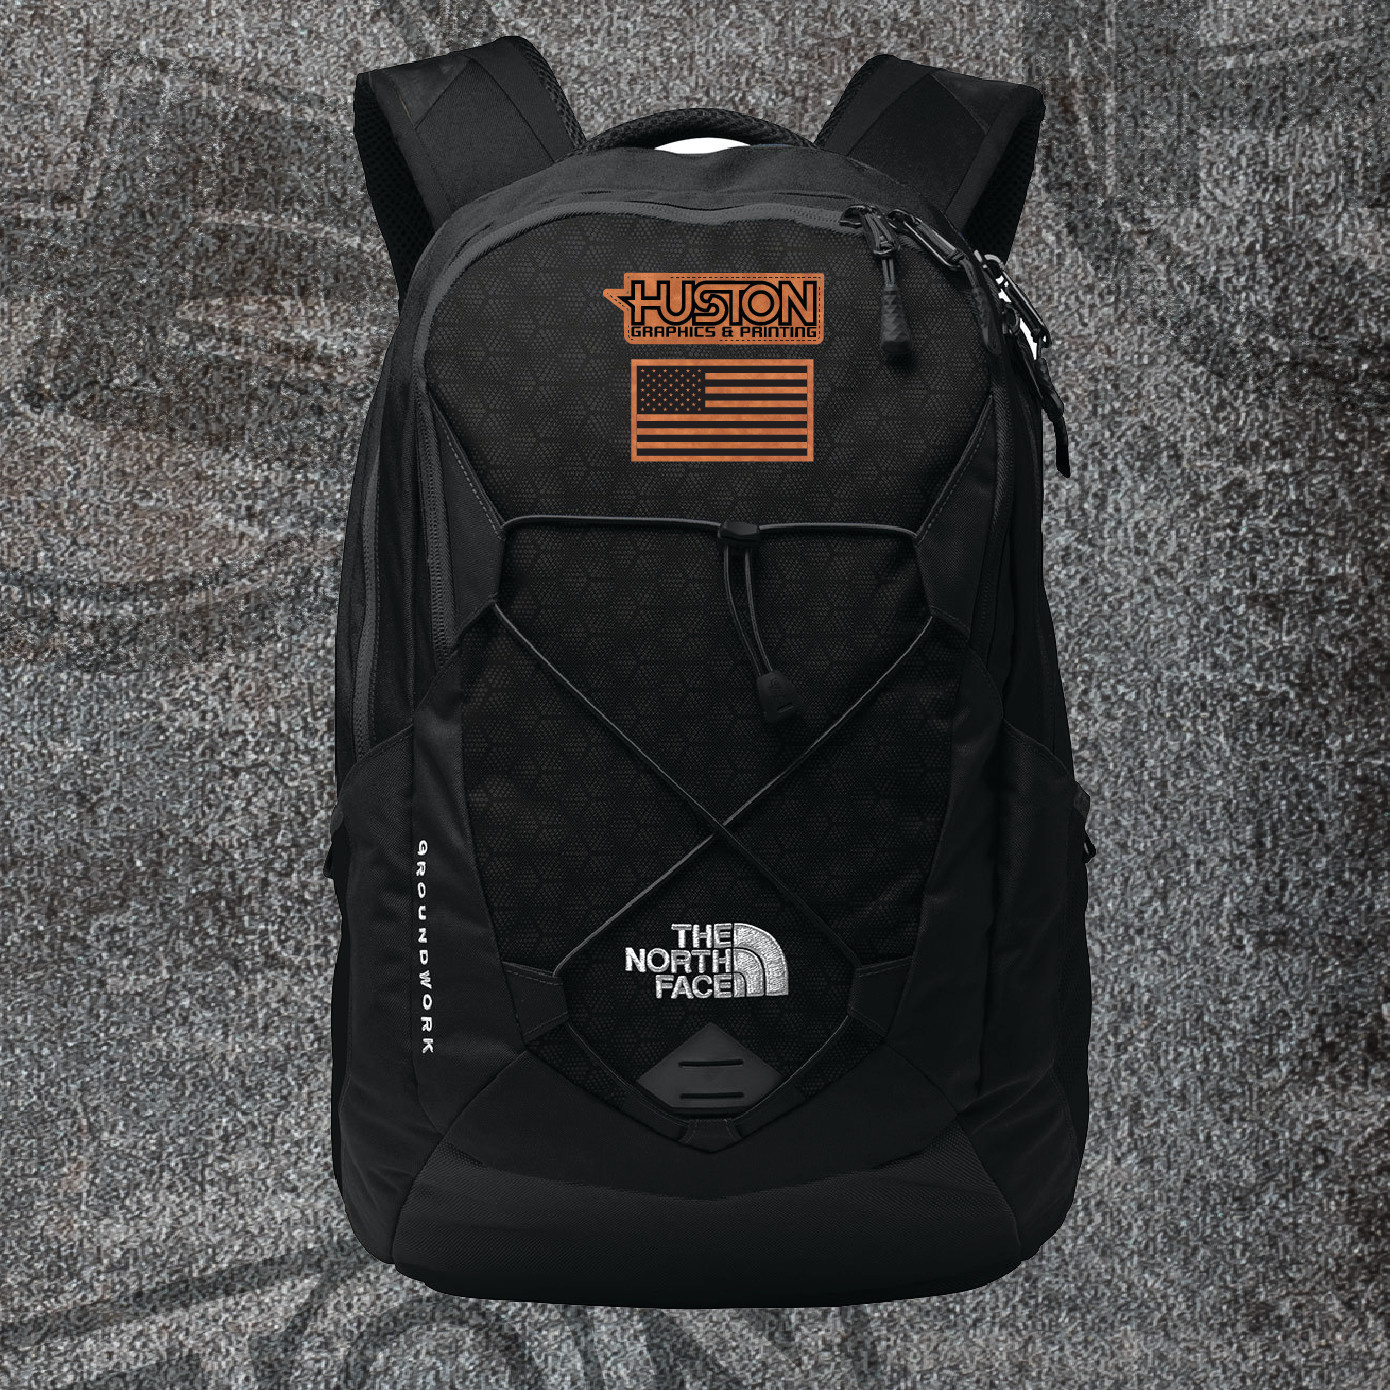 The North Face The North Face Groundwork Backpack (Black)